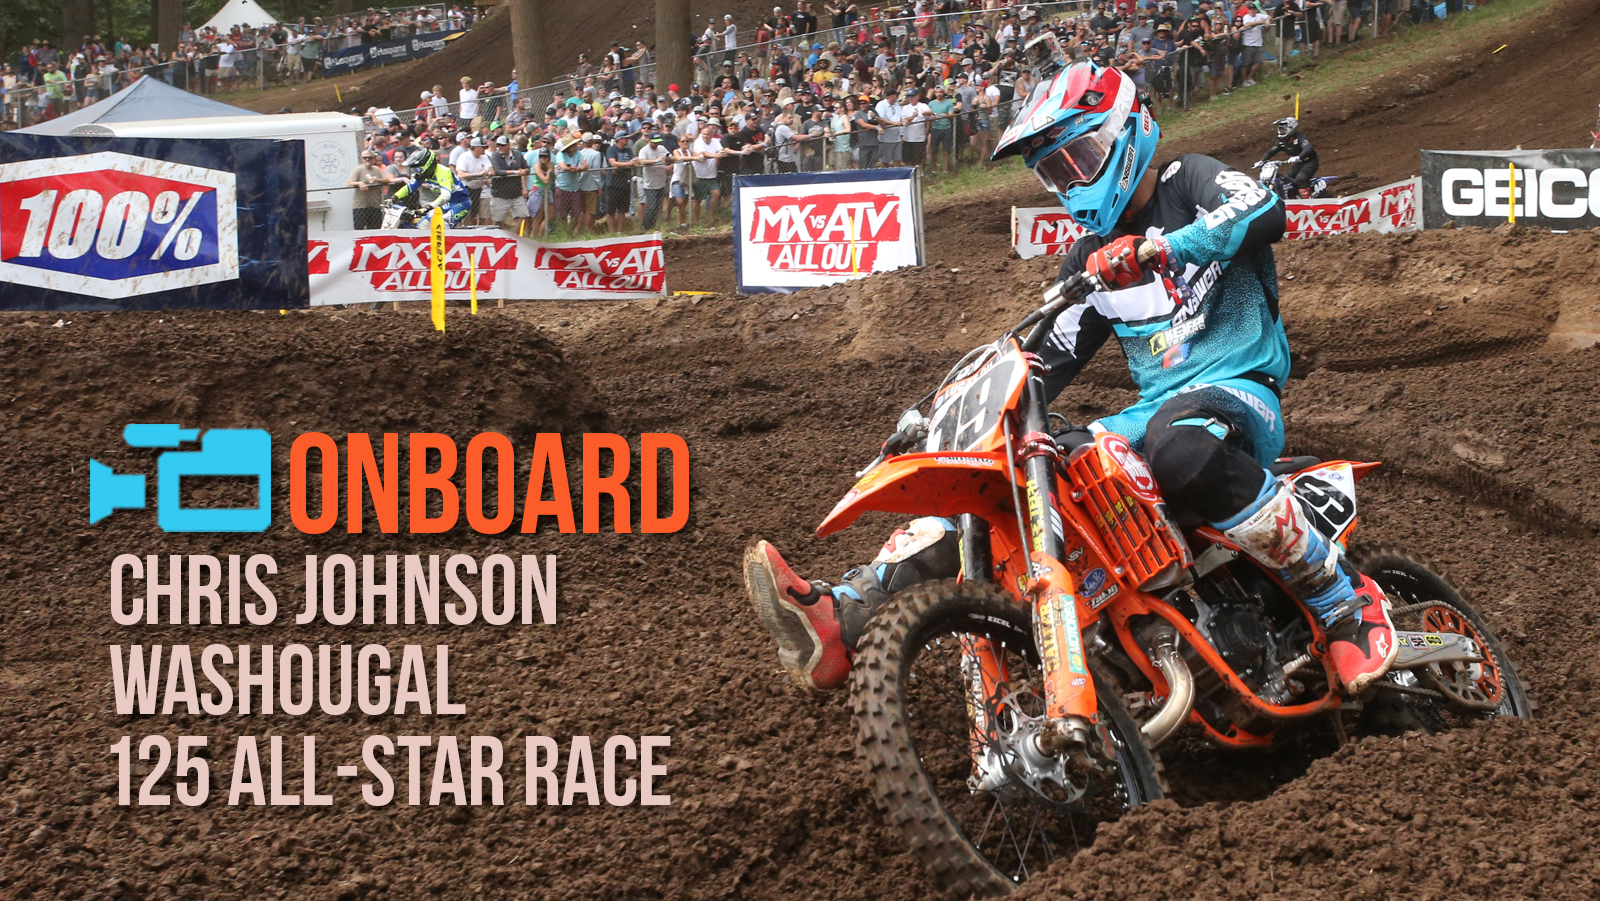 Washougal 125 All-Star Action with Chris Johnson